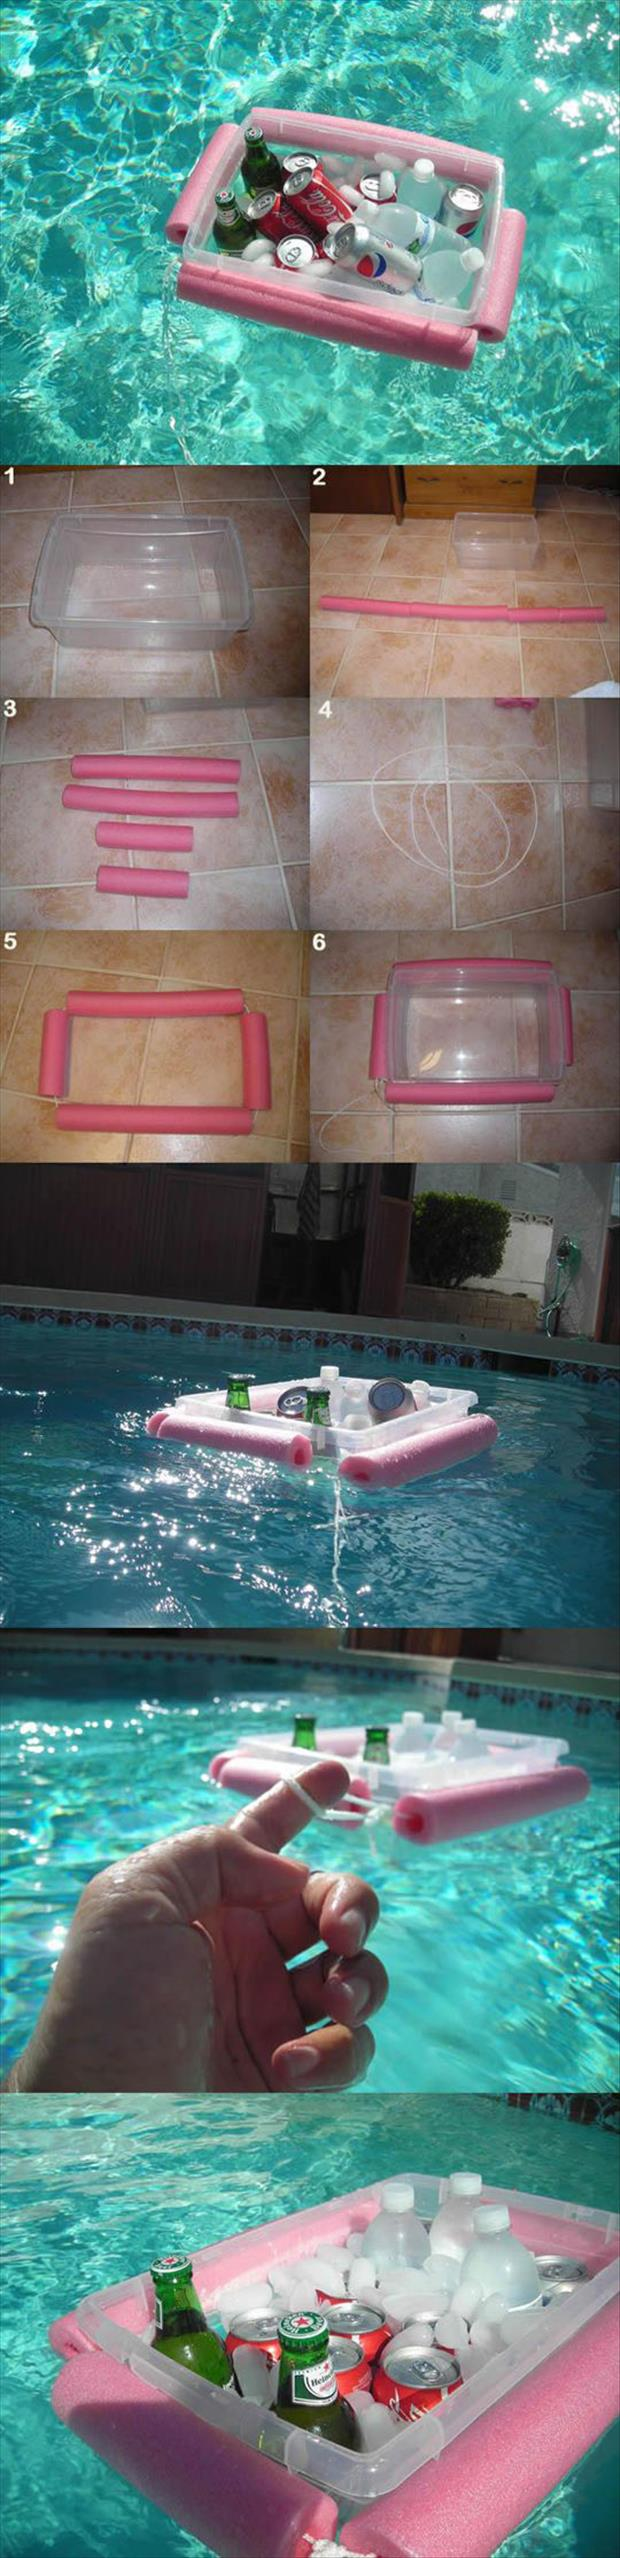 how to make a pool cooler